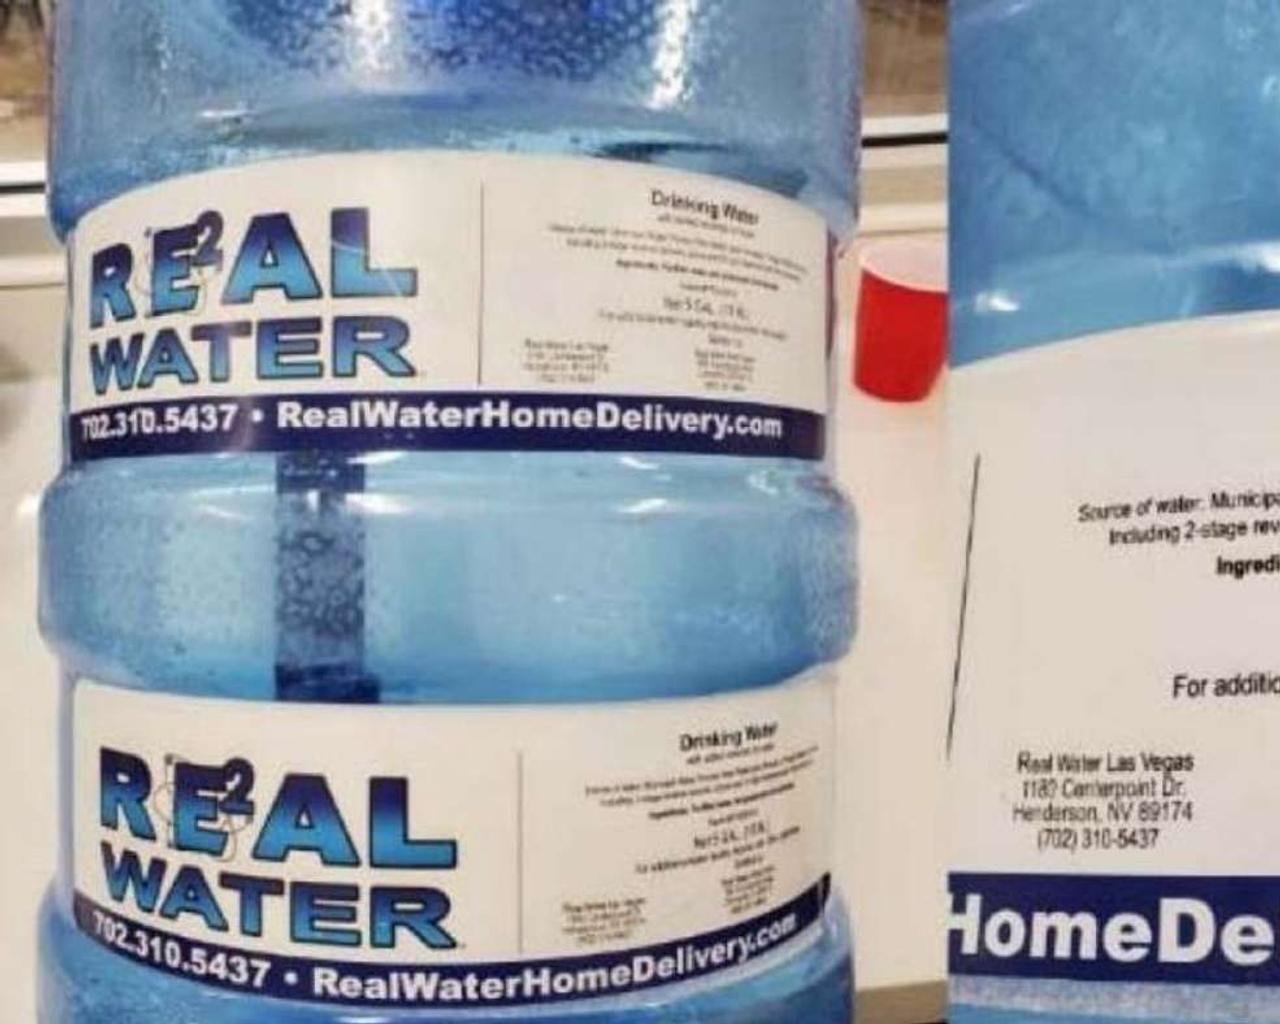 The FDA warns of a real water product linked to the outbreak of hepatitis